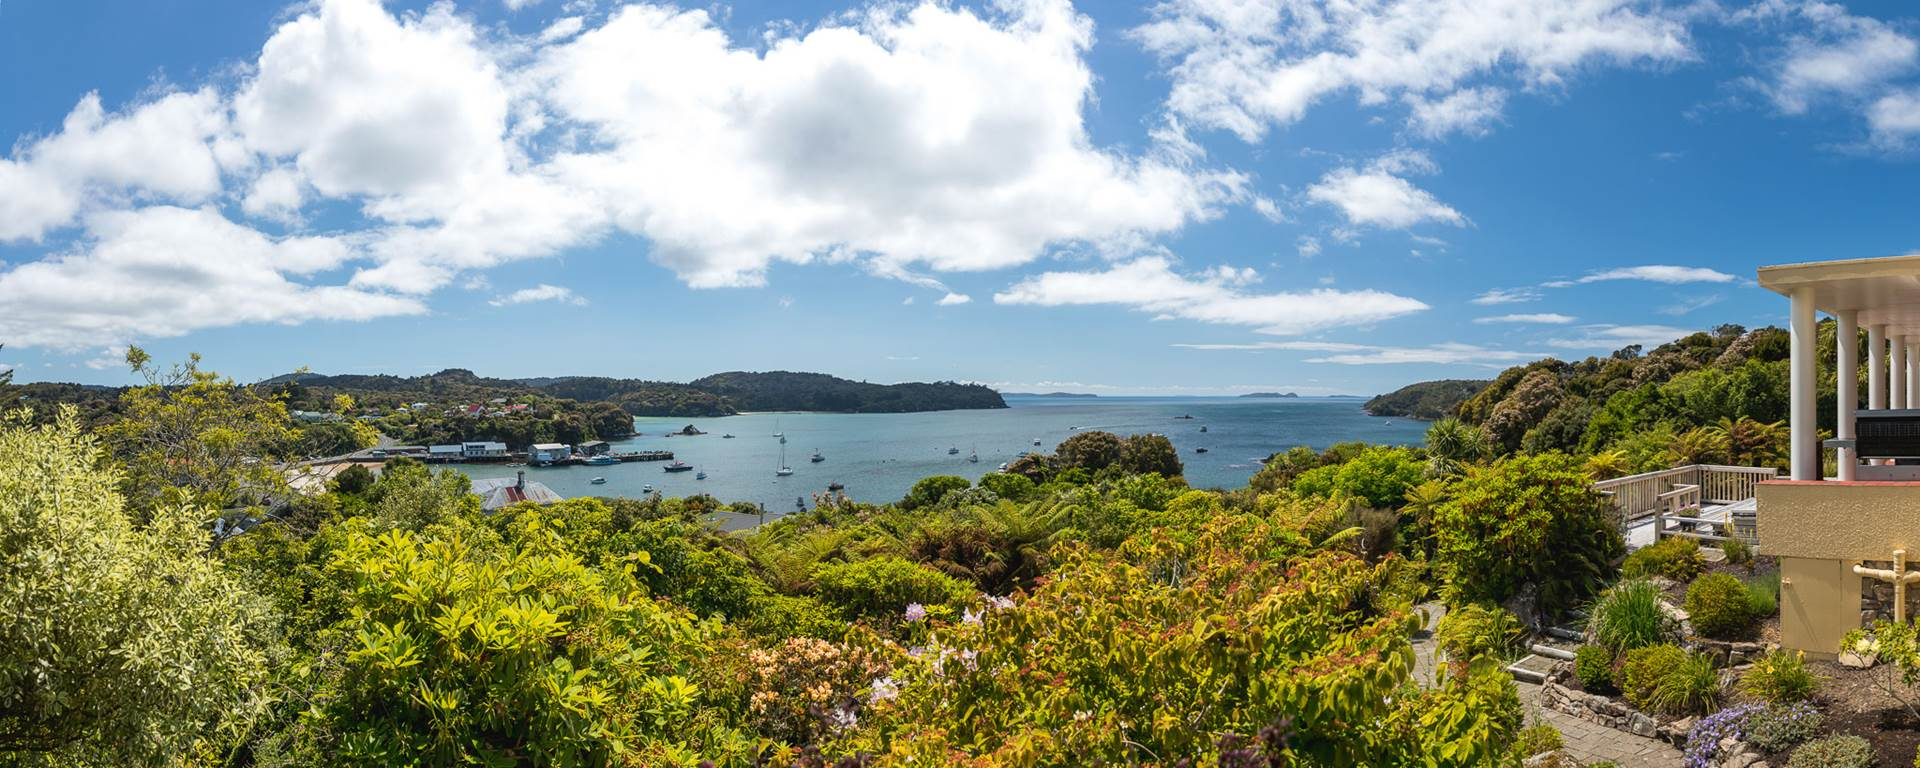 Stewart Island Lodge - view